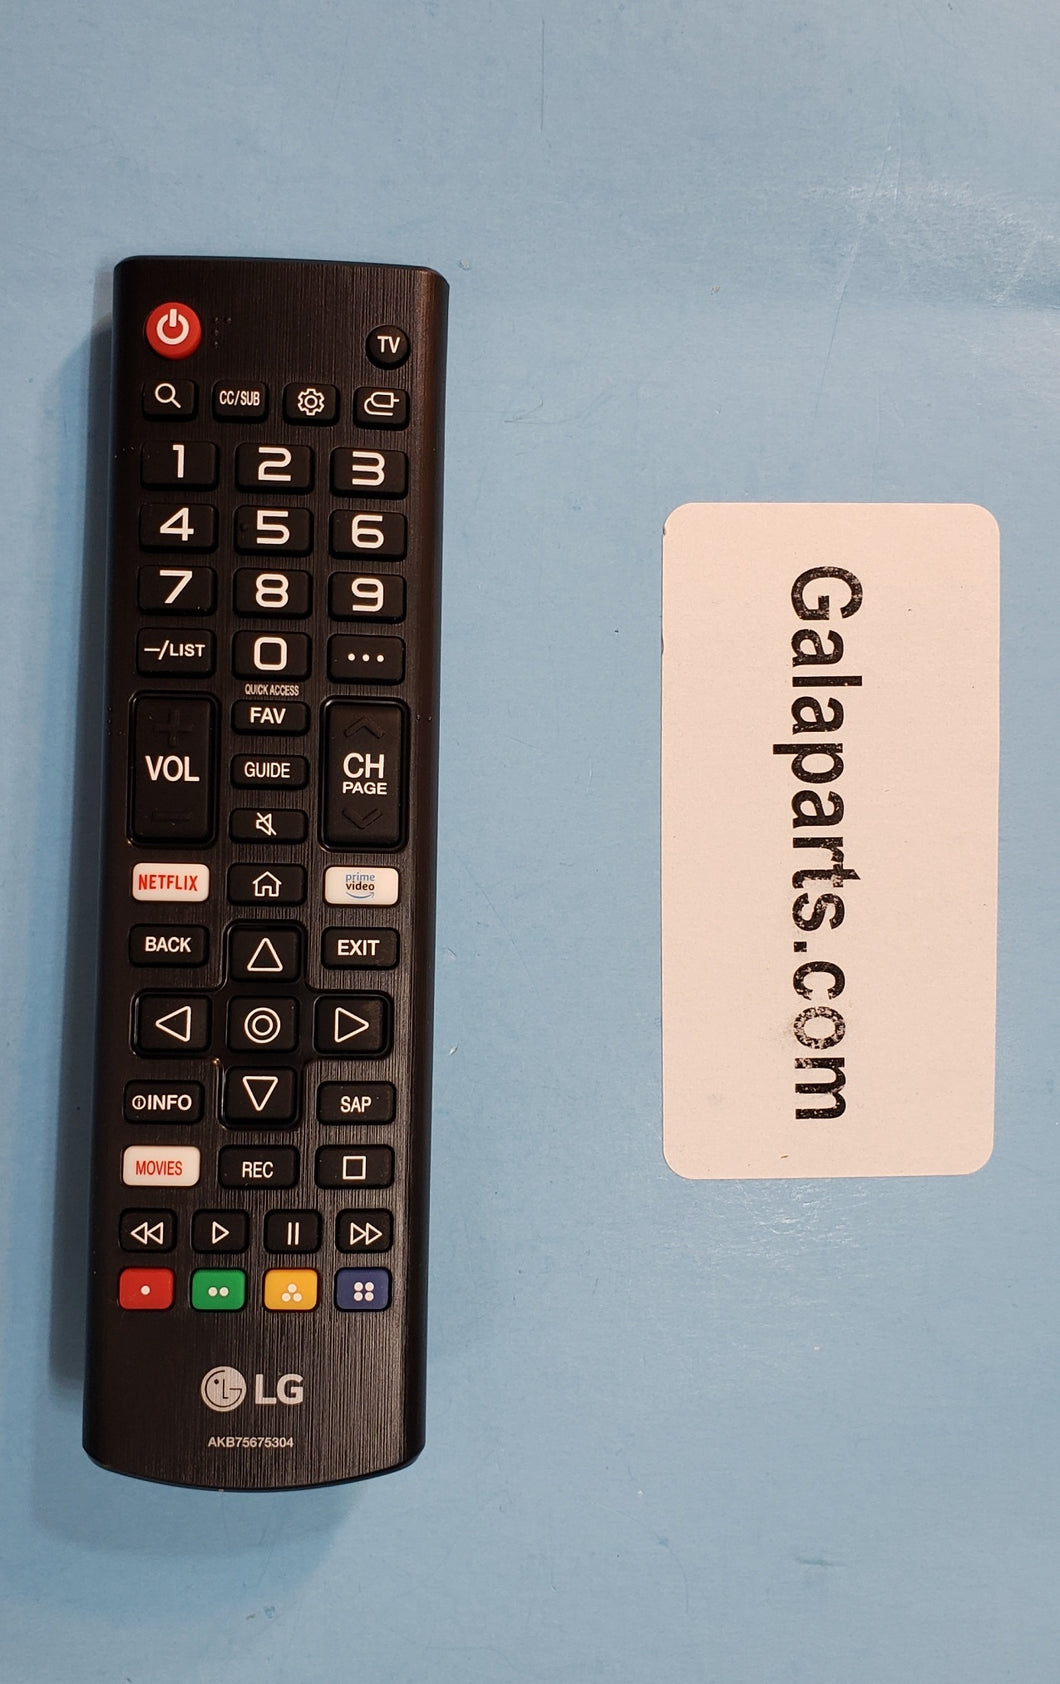 65UM6900 LG TV remote AKB75675304 - Electronics TV Parts - GalaParts.com